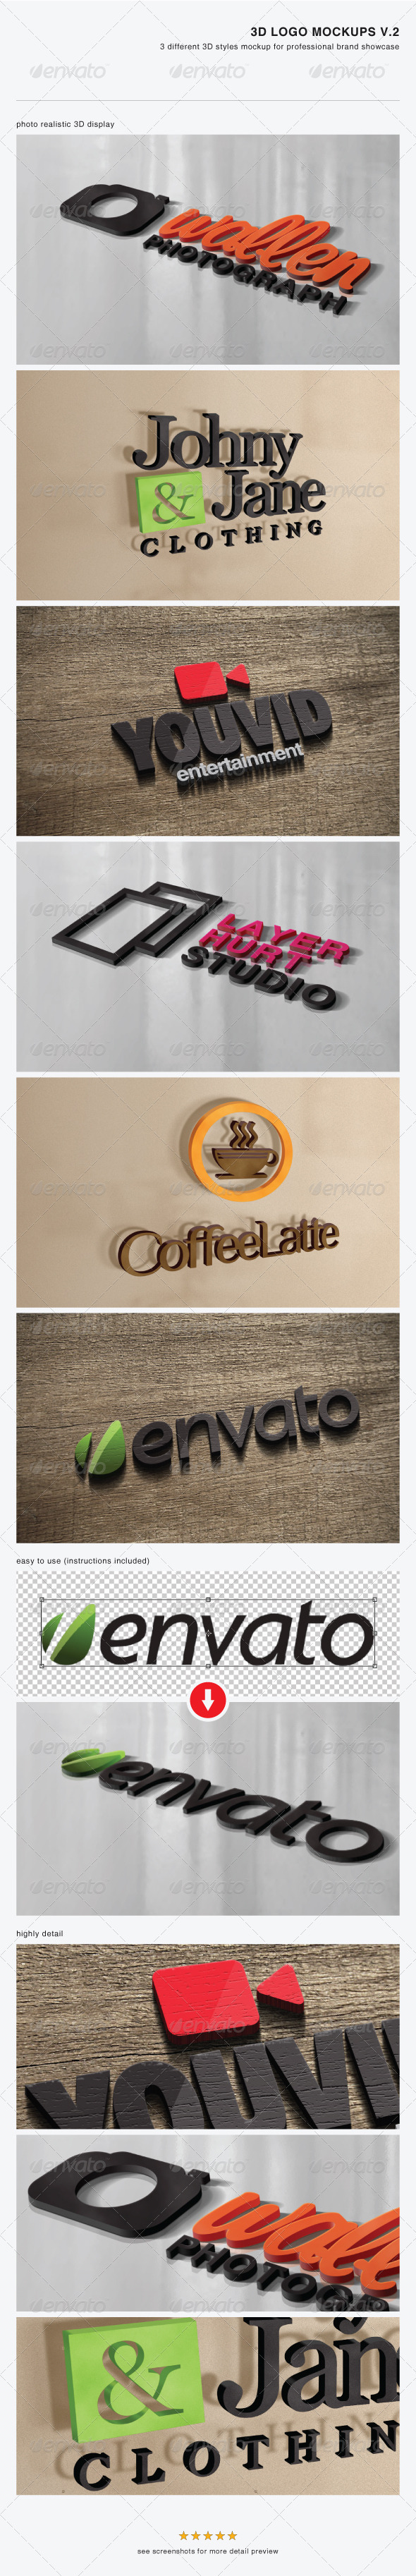 3D Logo Mockups V.2 - Logo Product Mock-Ups